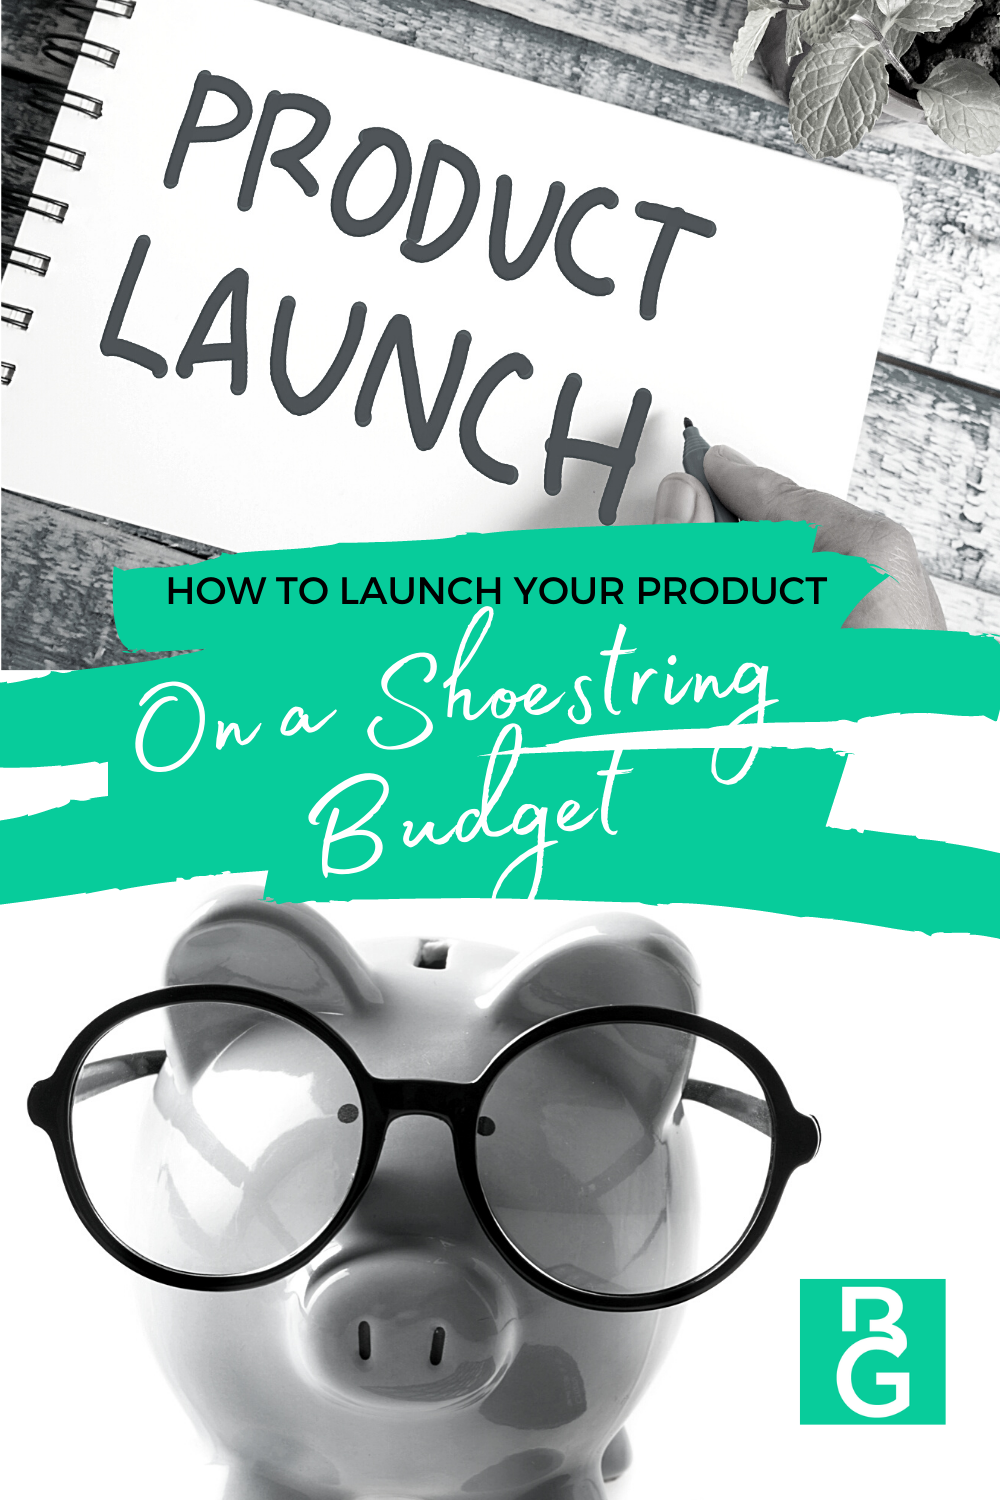 How To Launch Your Product On A Shoestring Budget